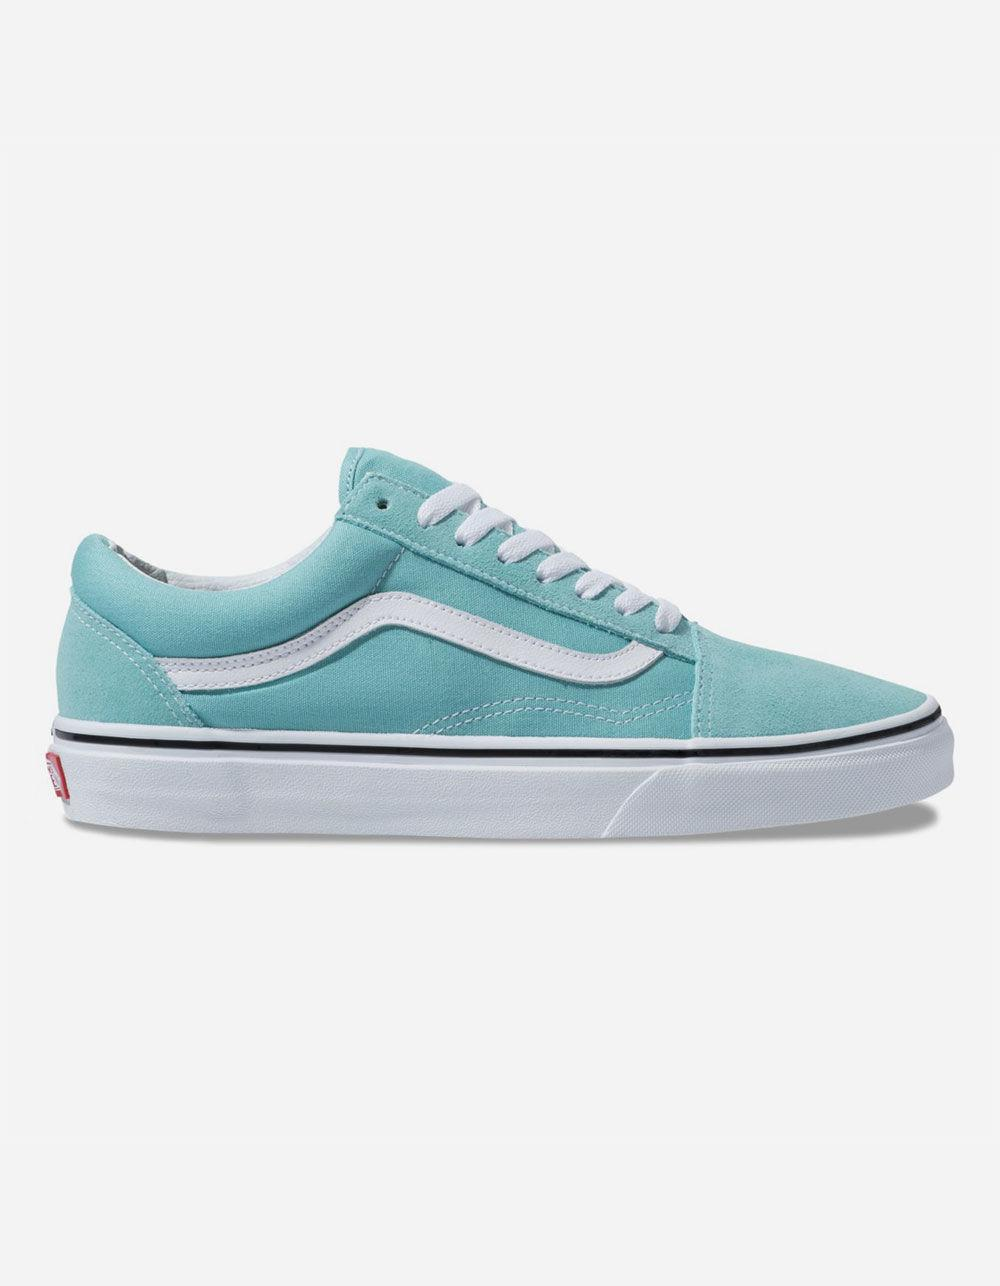 b0e72c2f07 Vans. Women s Old Skool Aqua Haze   True White Shoes